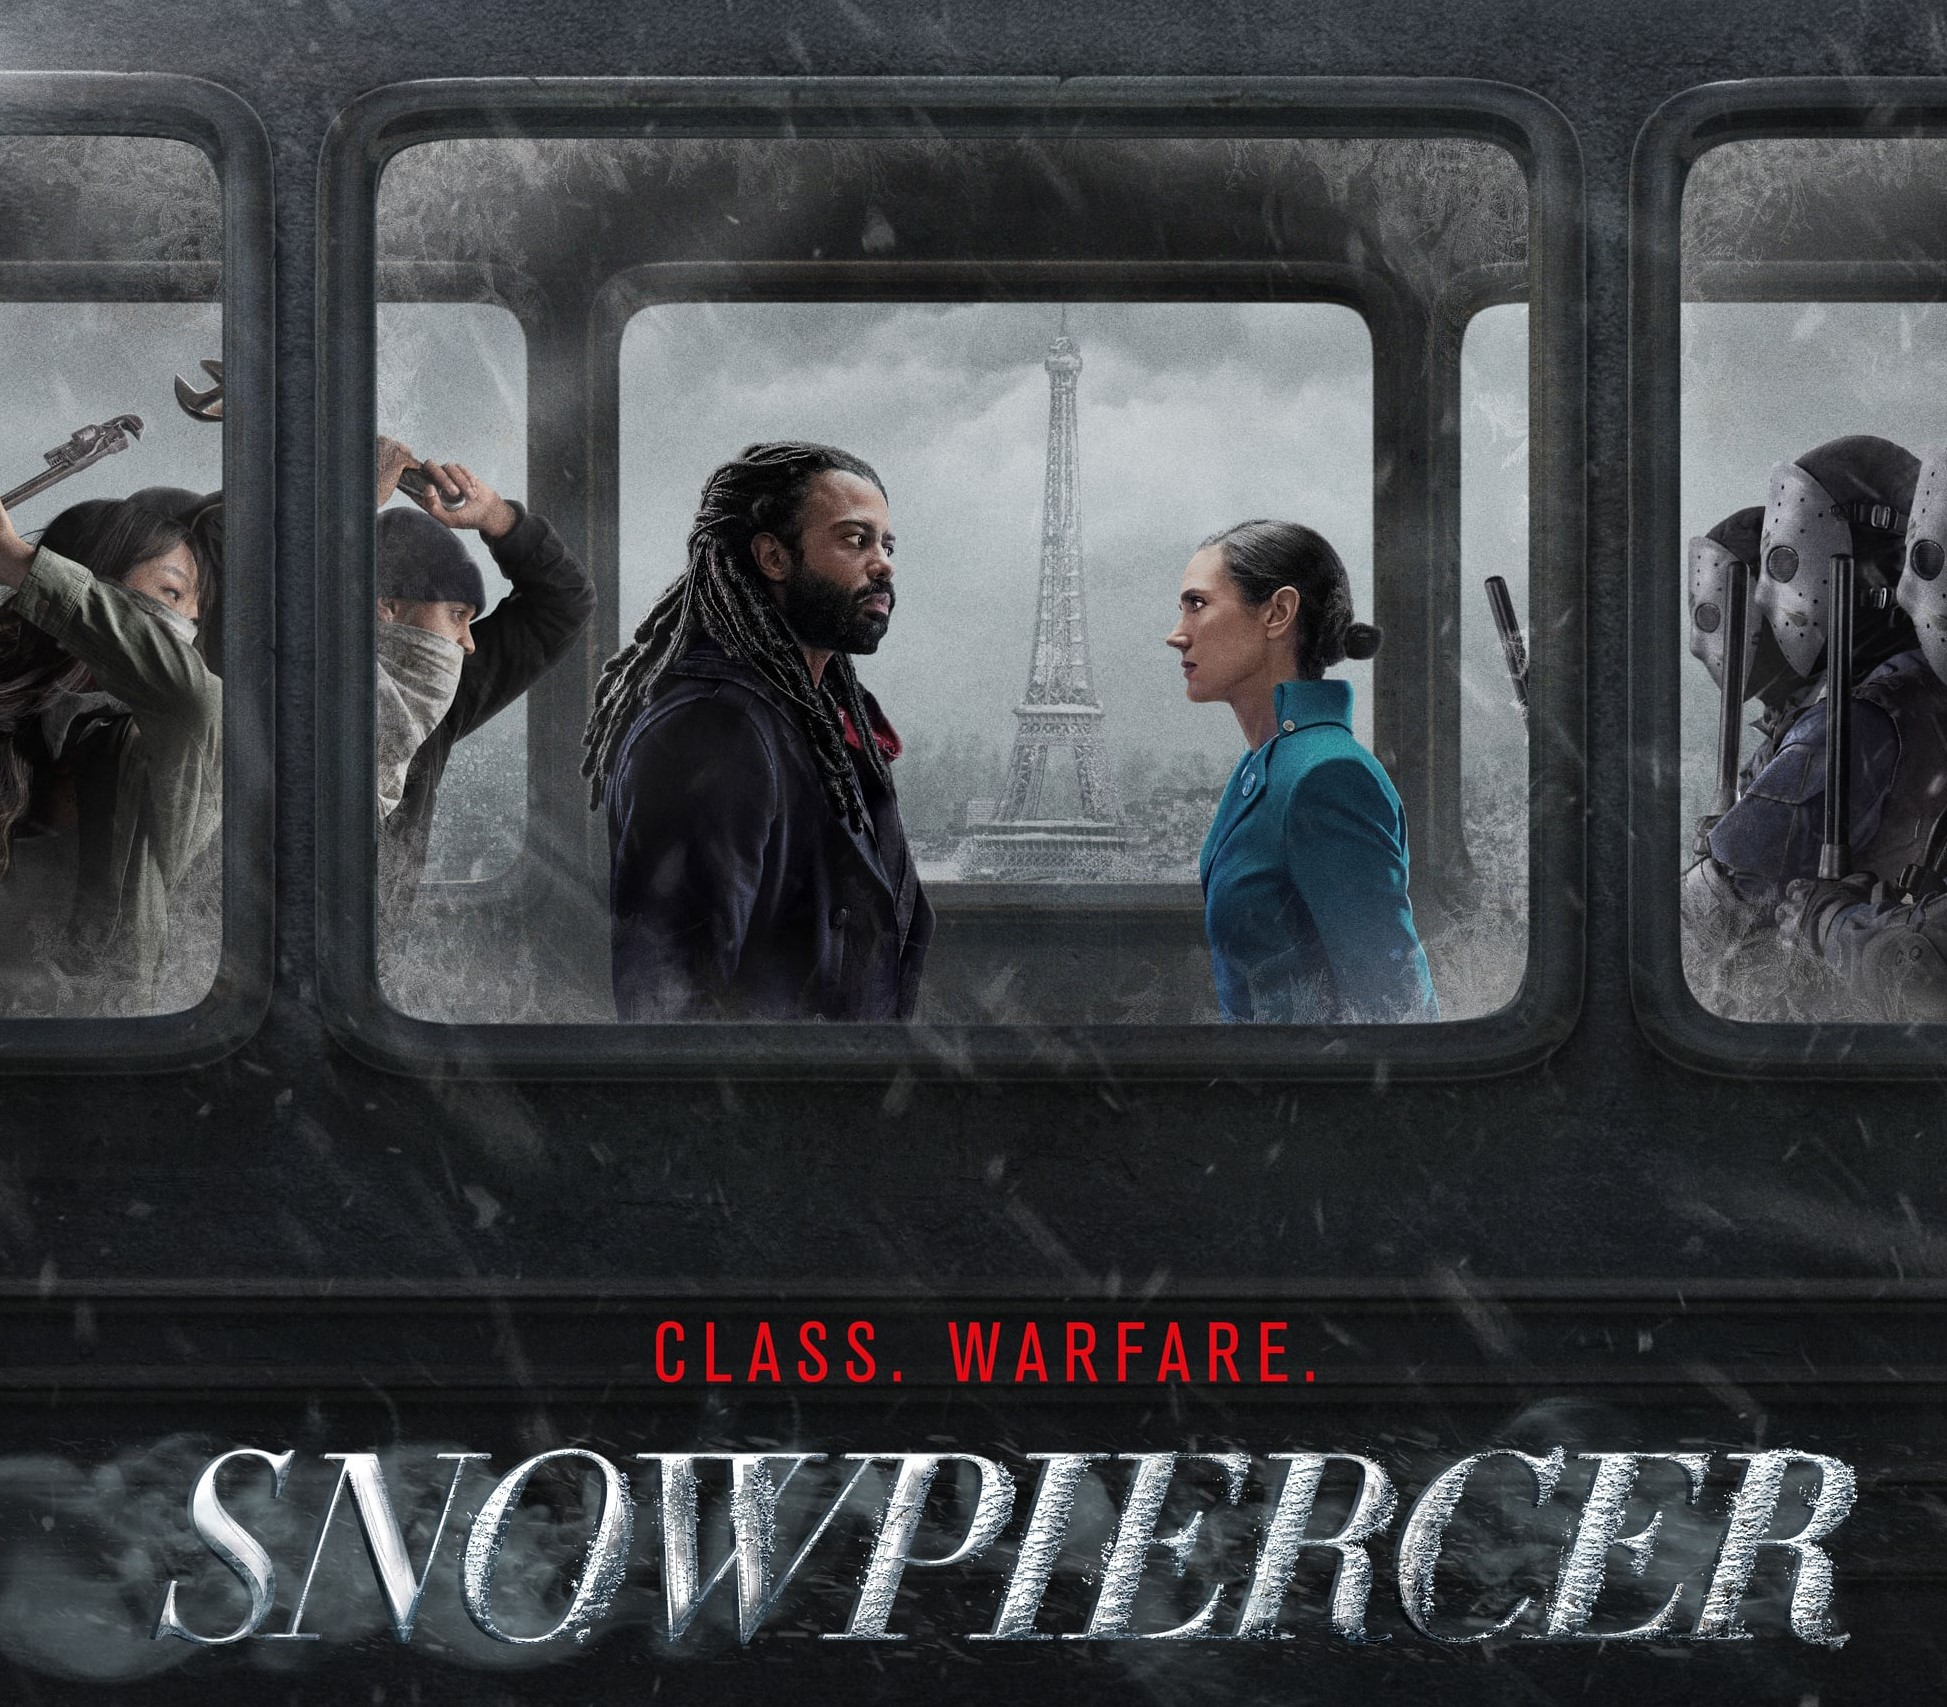 """Title"""" Snowpiercer under a man and a woman sitting on a train, facing each other"""